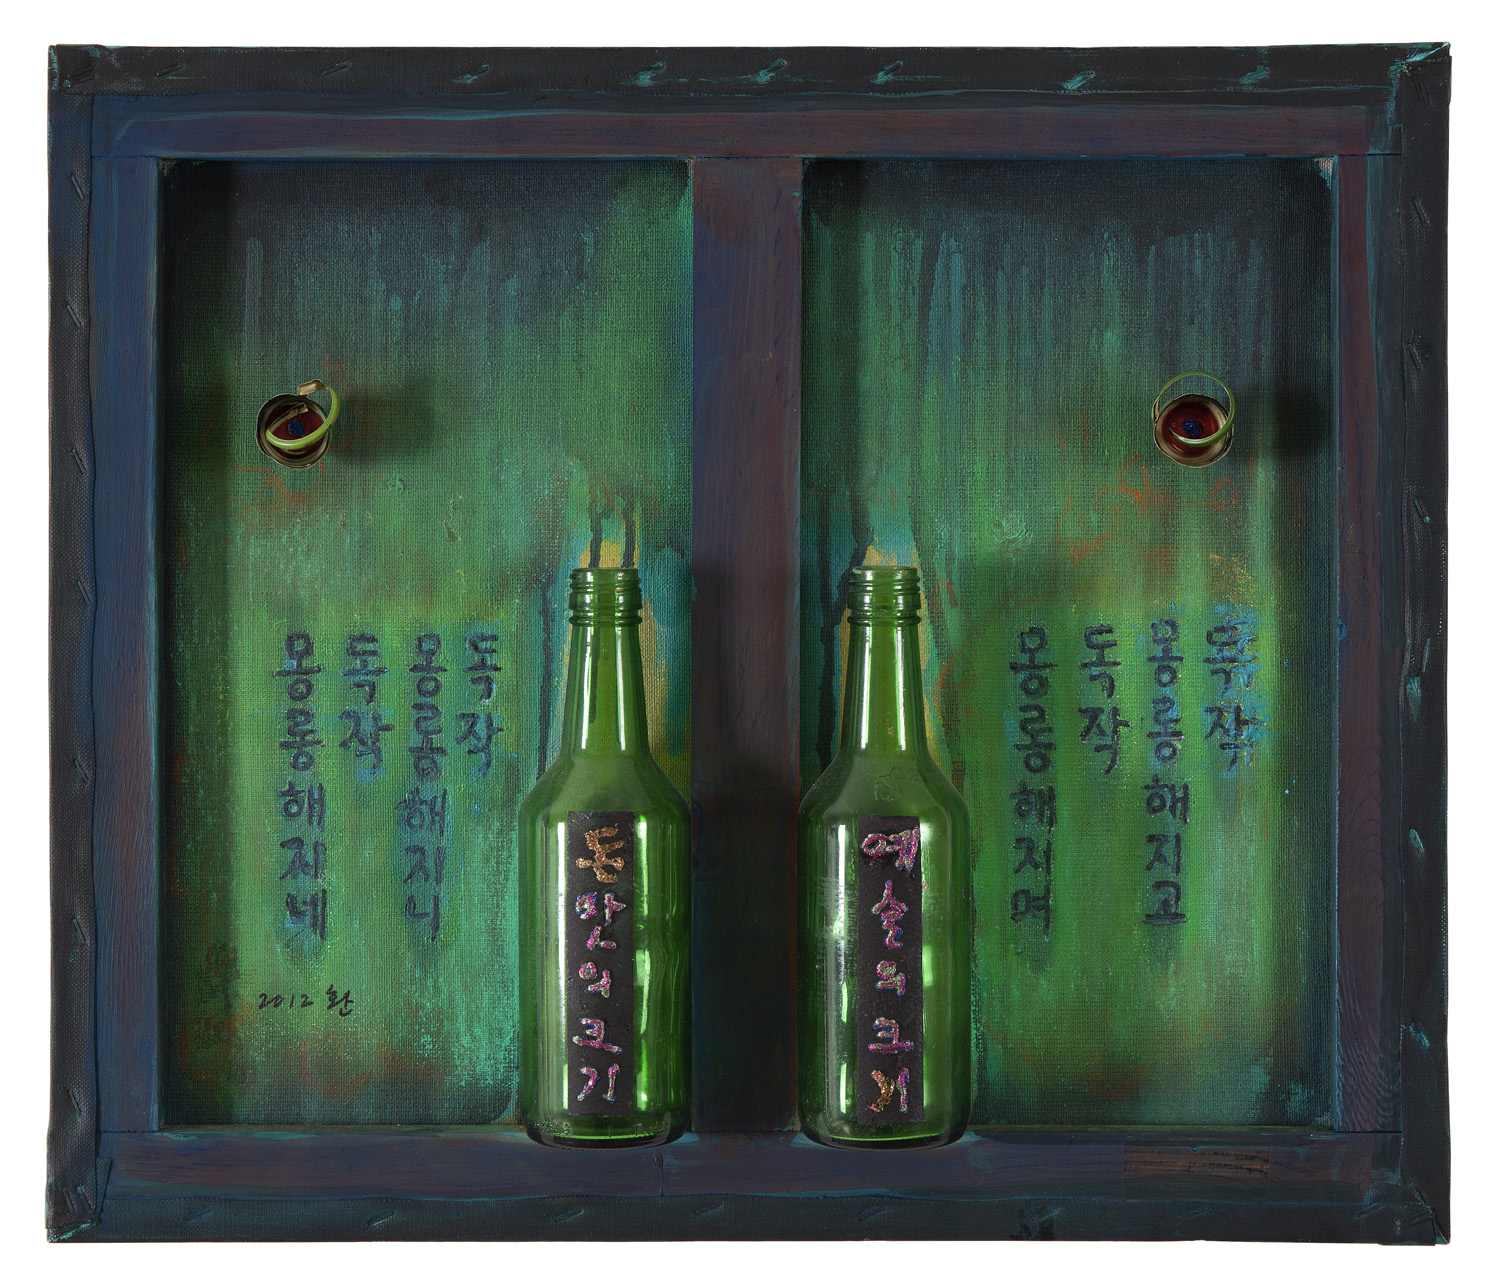 Drink Alone, 2012, Oil and two soju bottles on canvas, 45x53x6cm